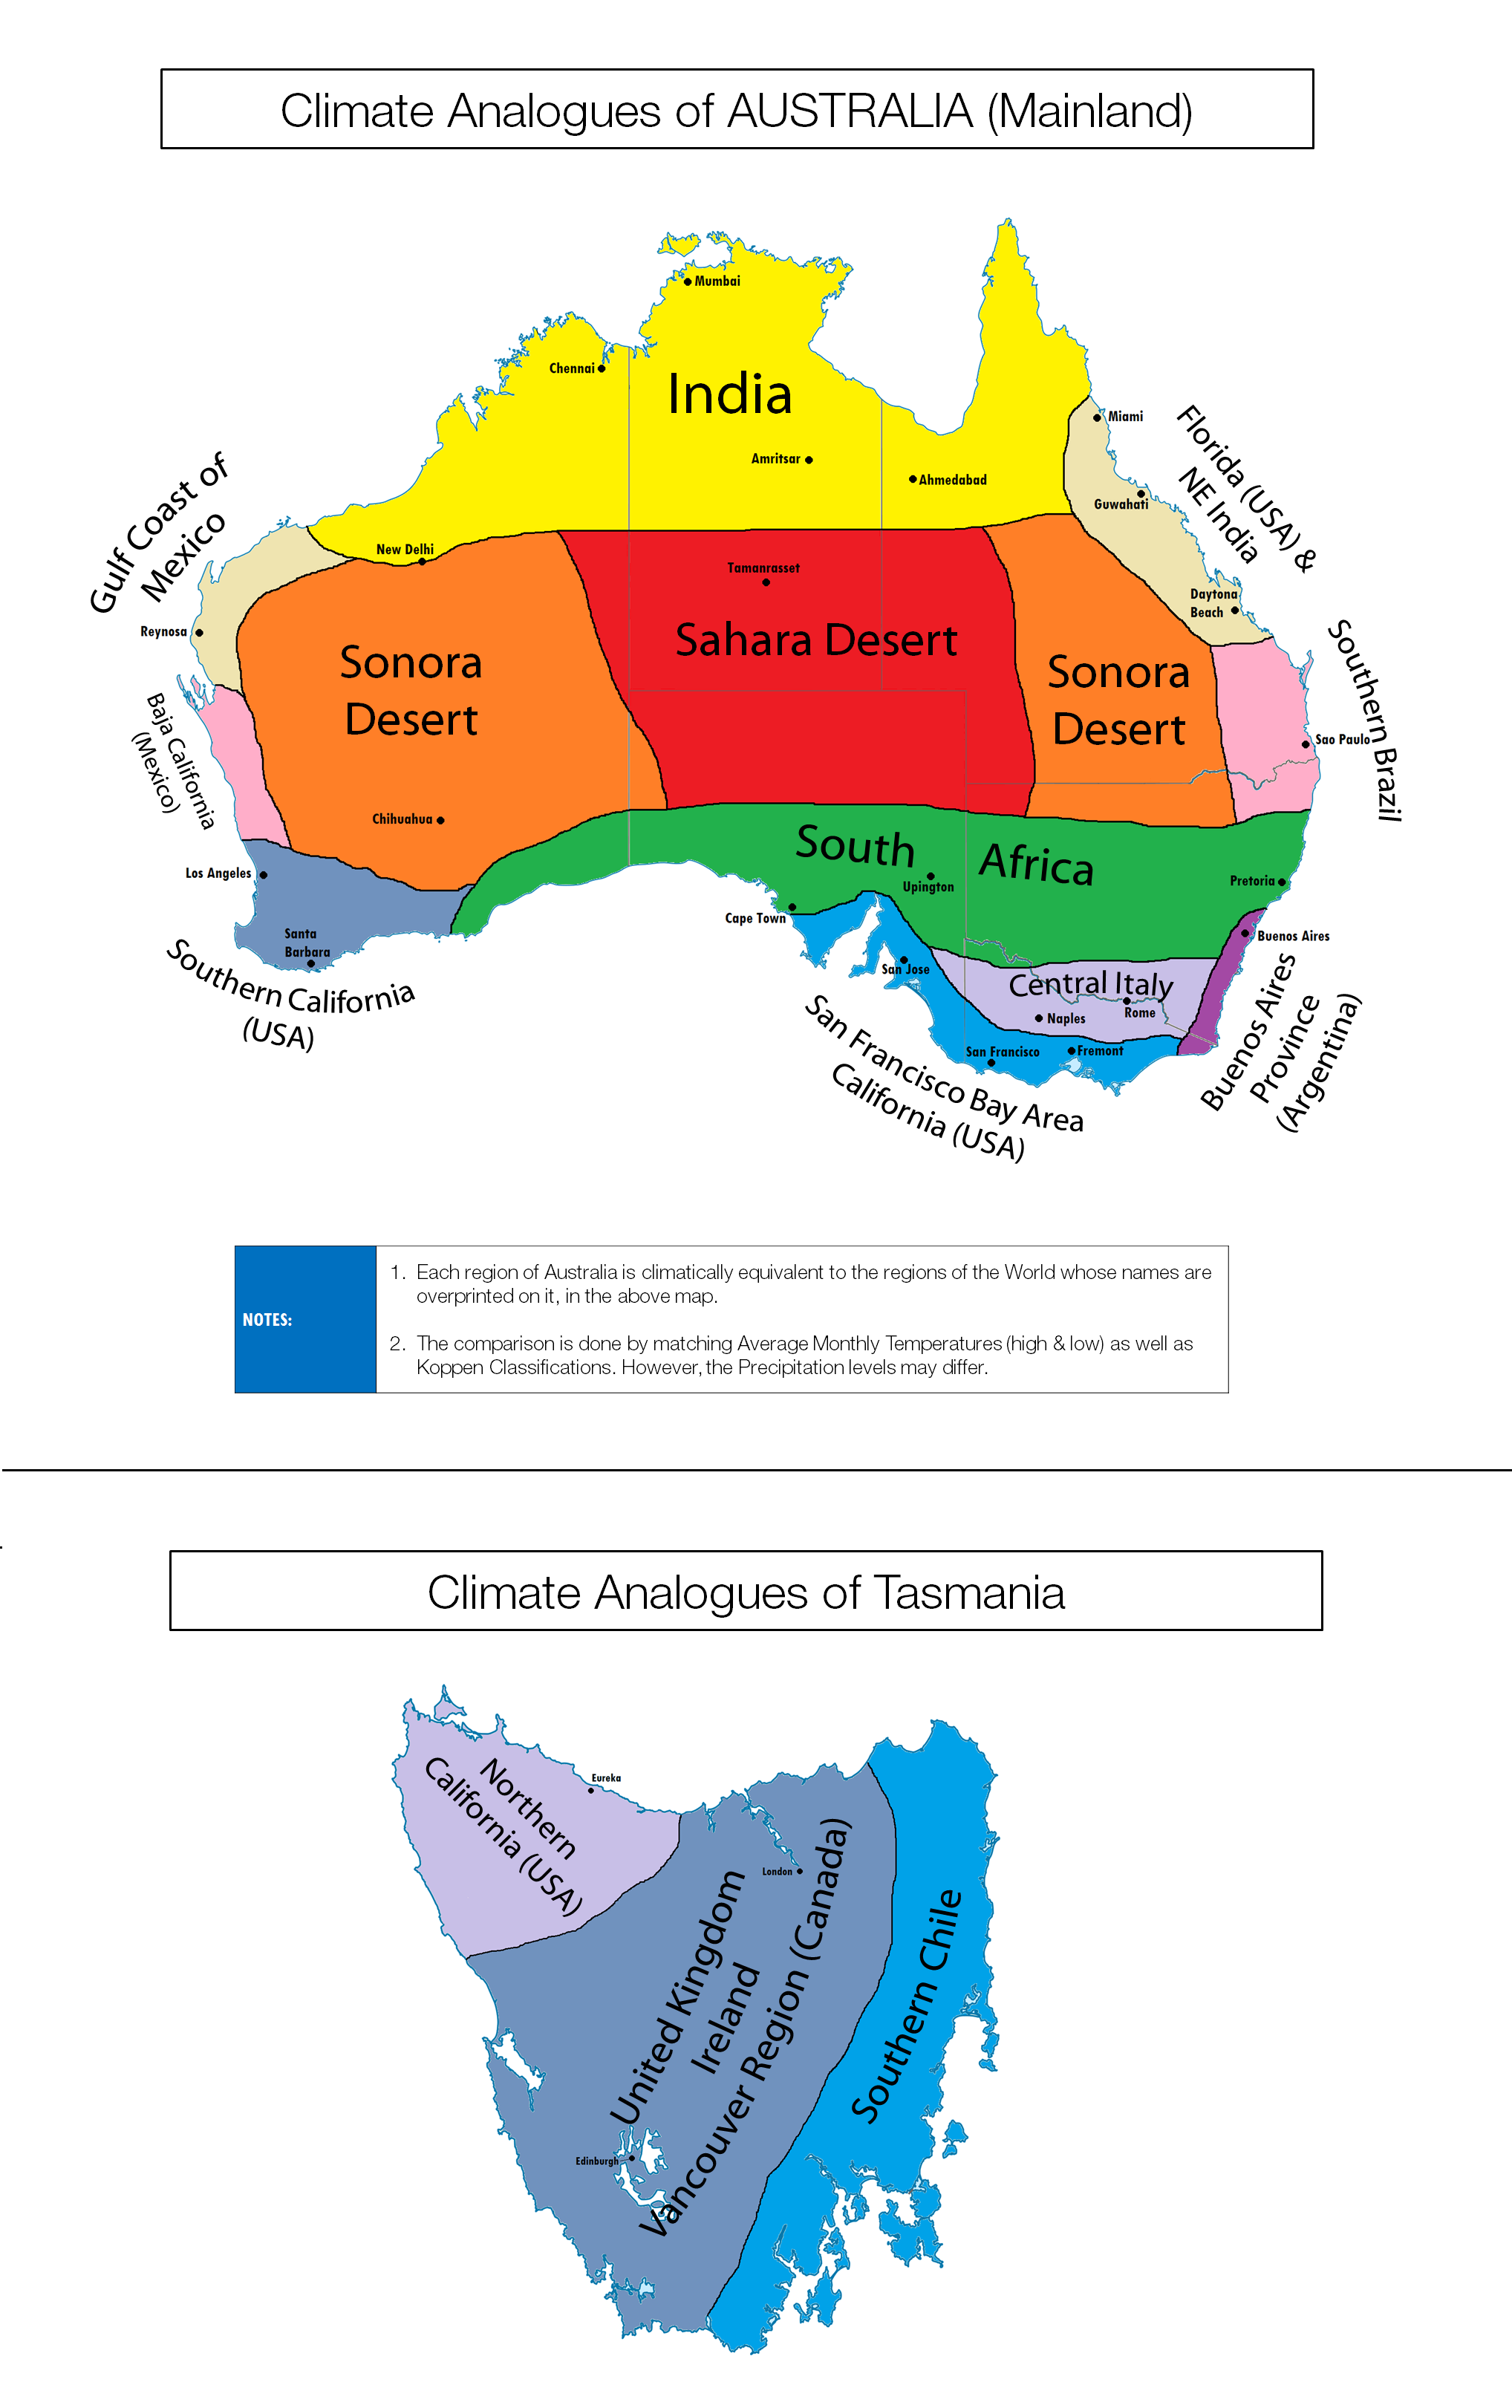 Map Of Australia Images.Climate Analogues Of Australia Brilliant Maps